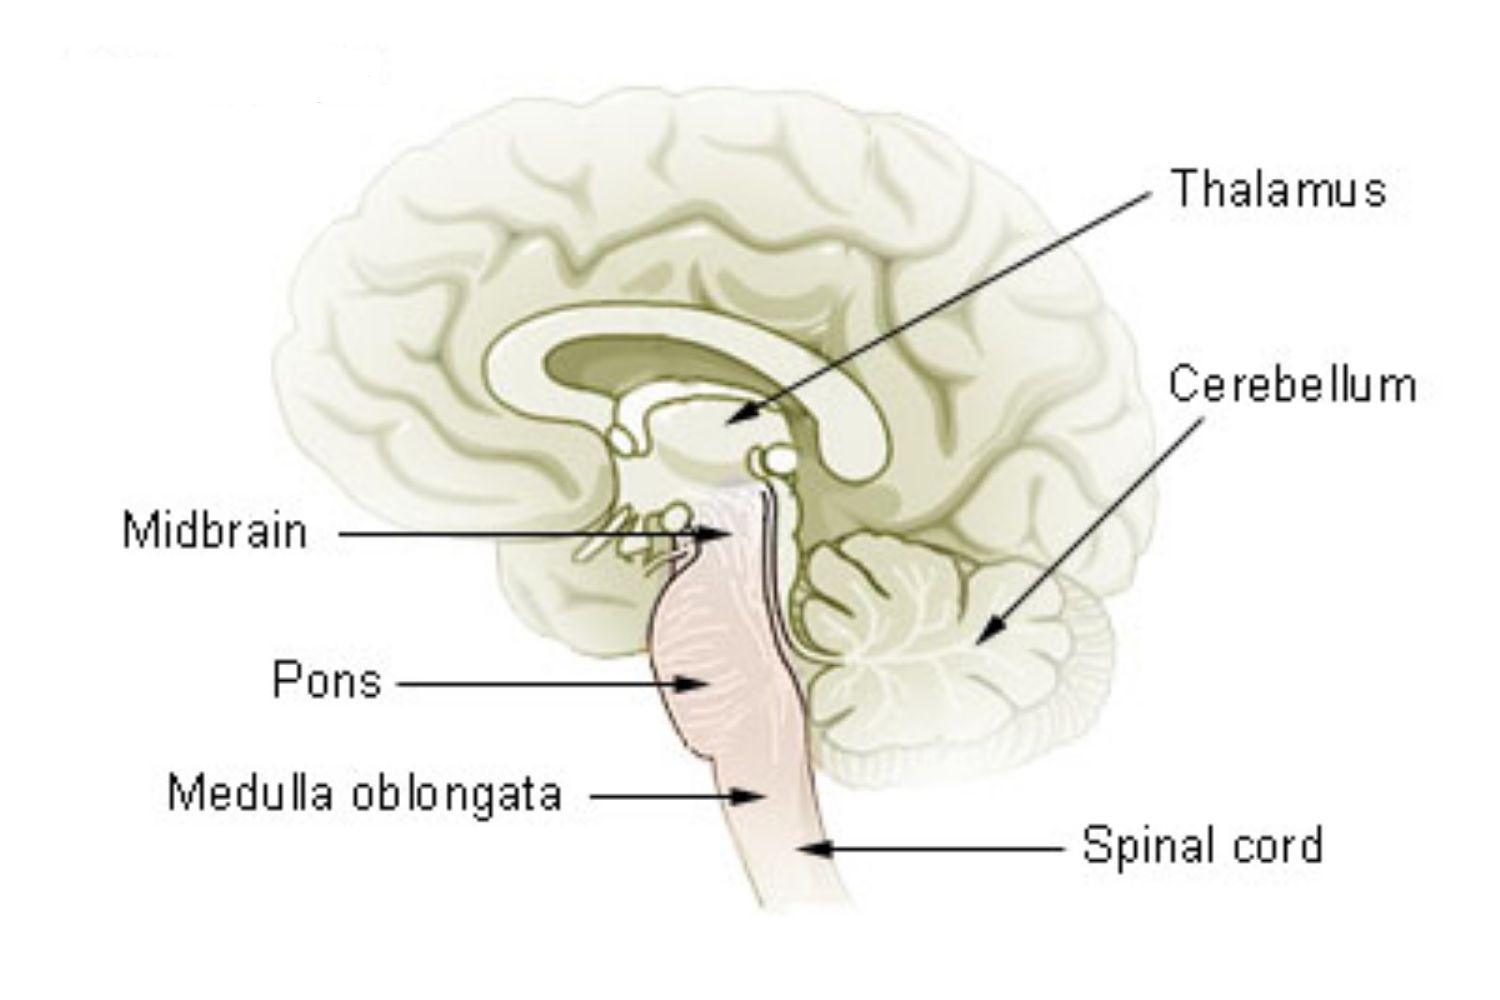 brain diagram pons how to draw a cell mesencephalon midbrain function and structures